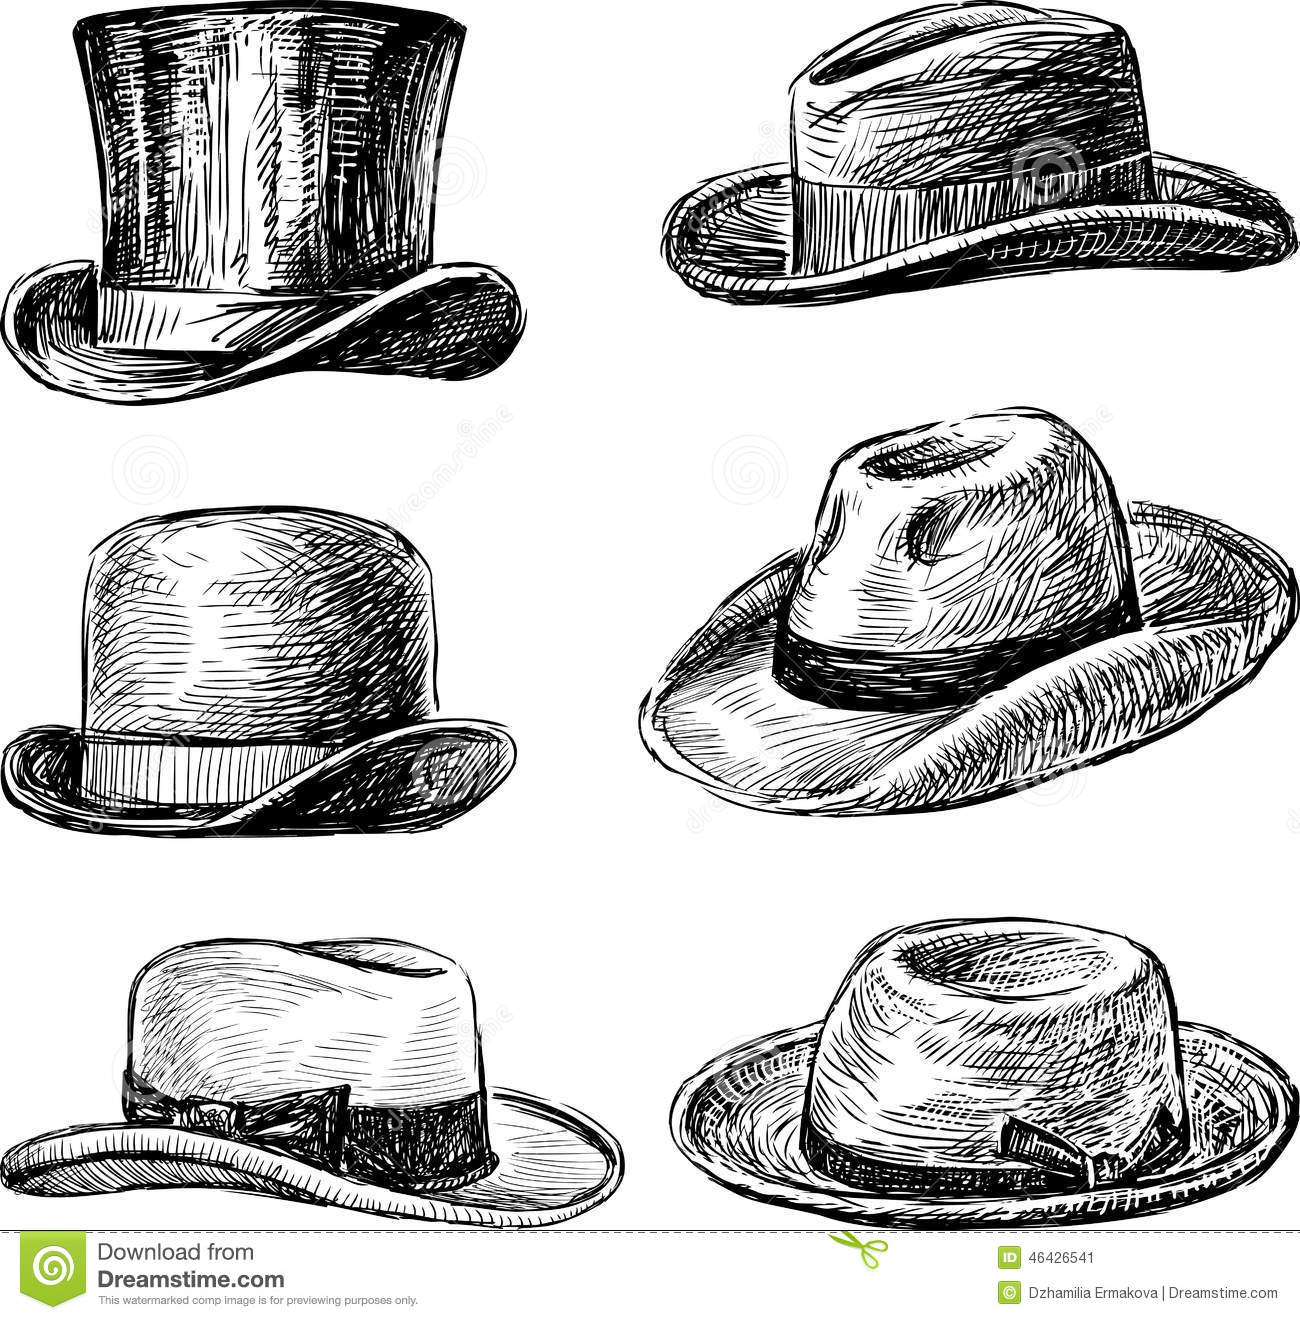 8973a8f9 Men's hats stock vector. Illustration of styled, band - 46426541